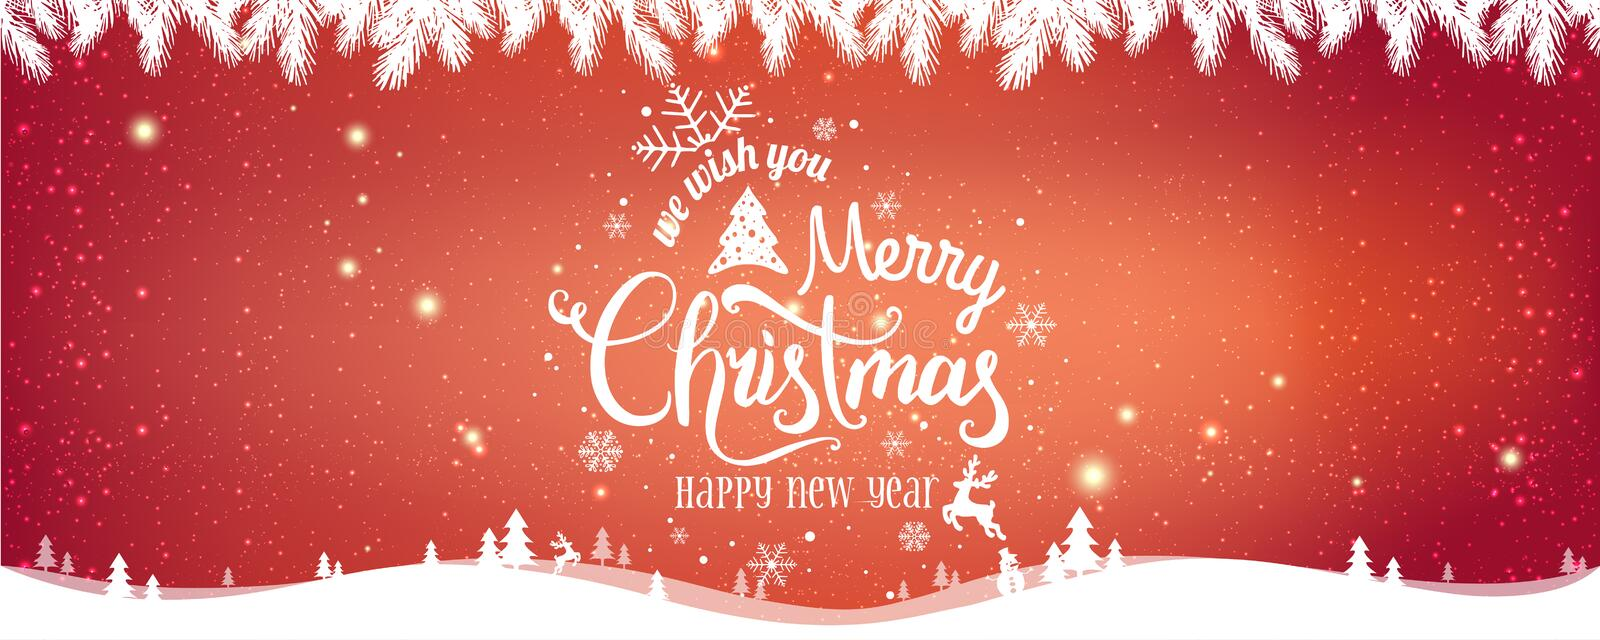 Christmas and New Year Typographical on red Xmas background with winter landscape royalty free illustration